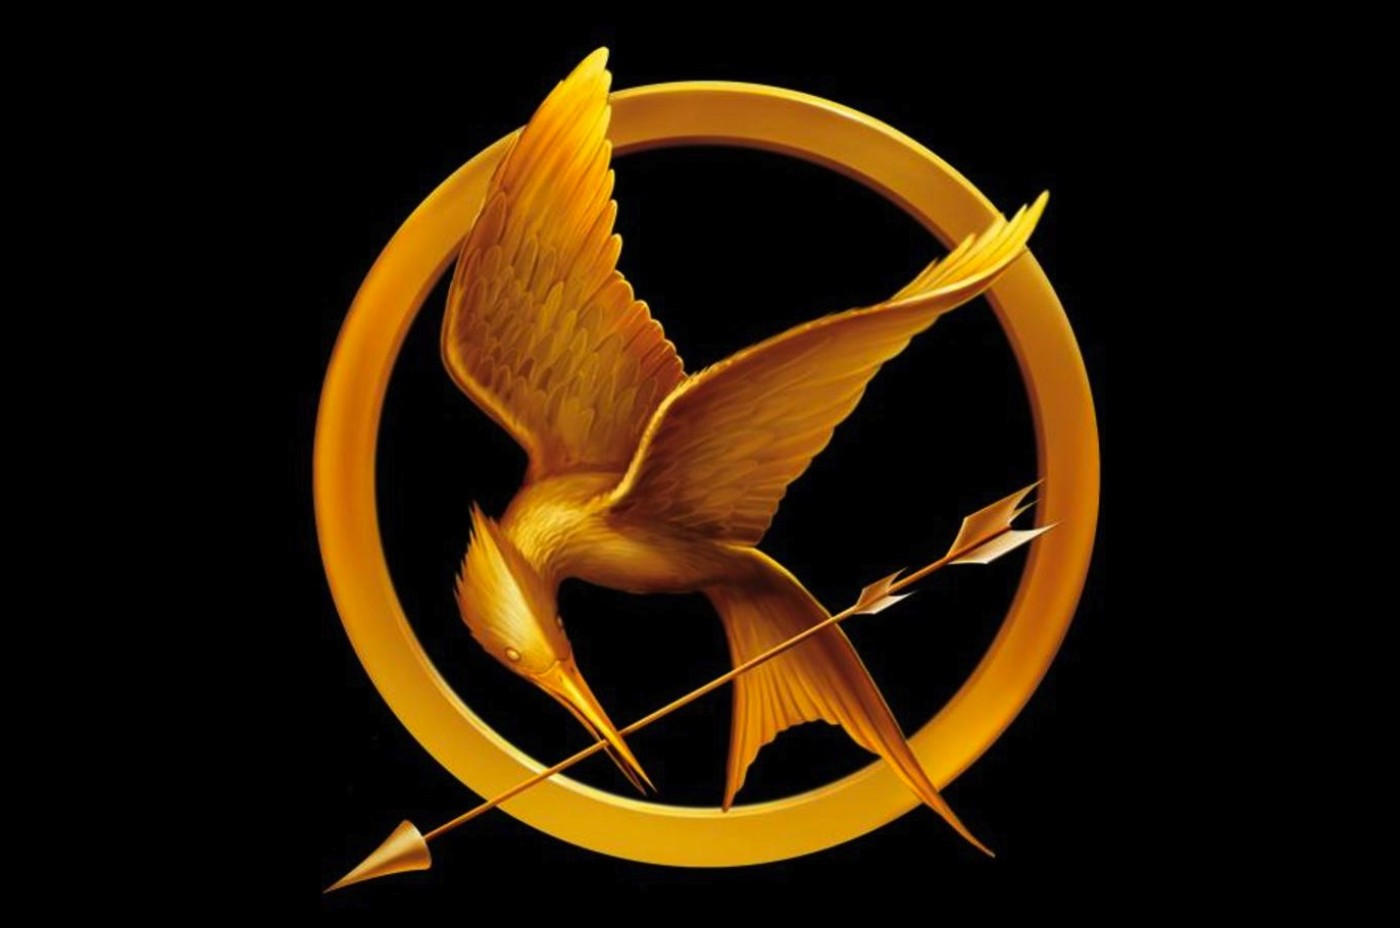 010 Essay Example The Hunger Games Mockingjay Pin 1920x1200 Symbol11 Book Imposing Review 1400